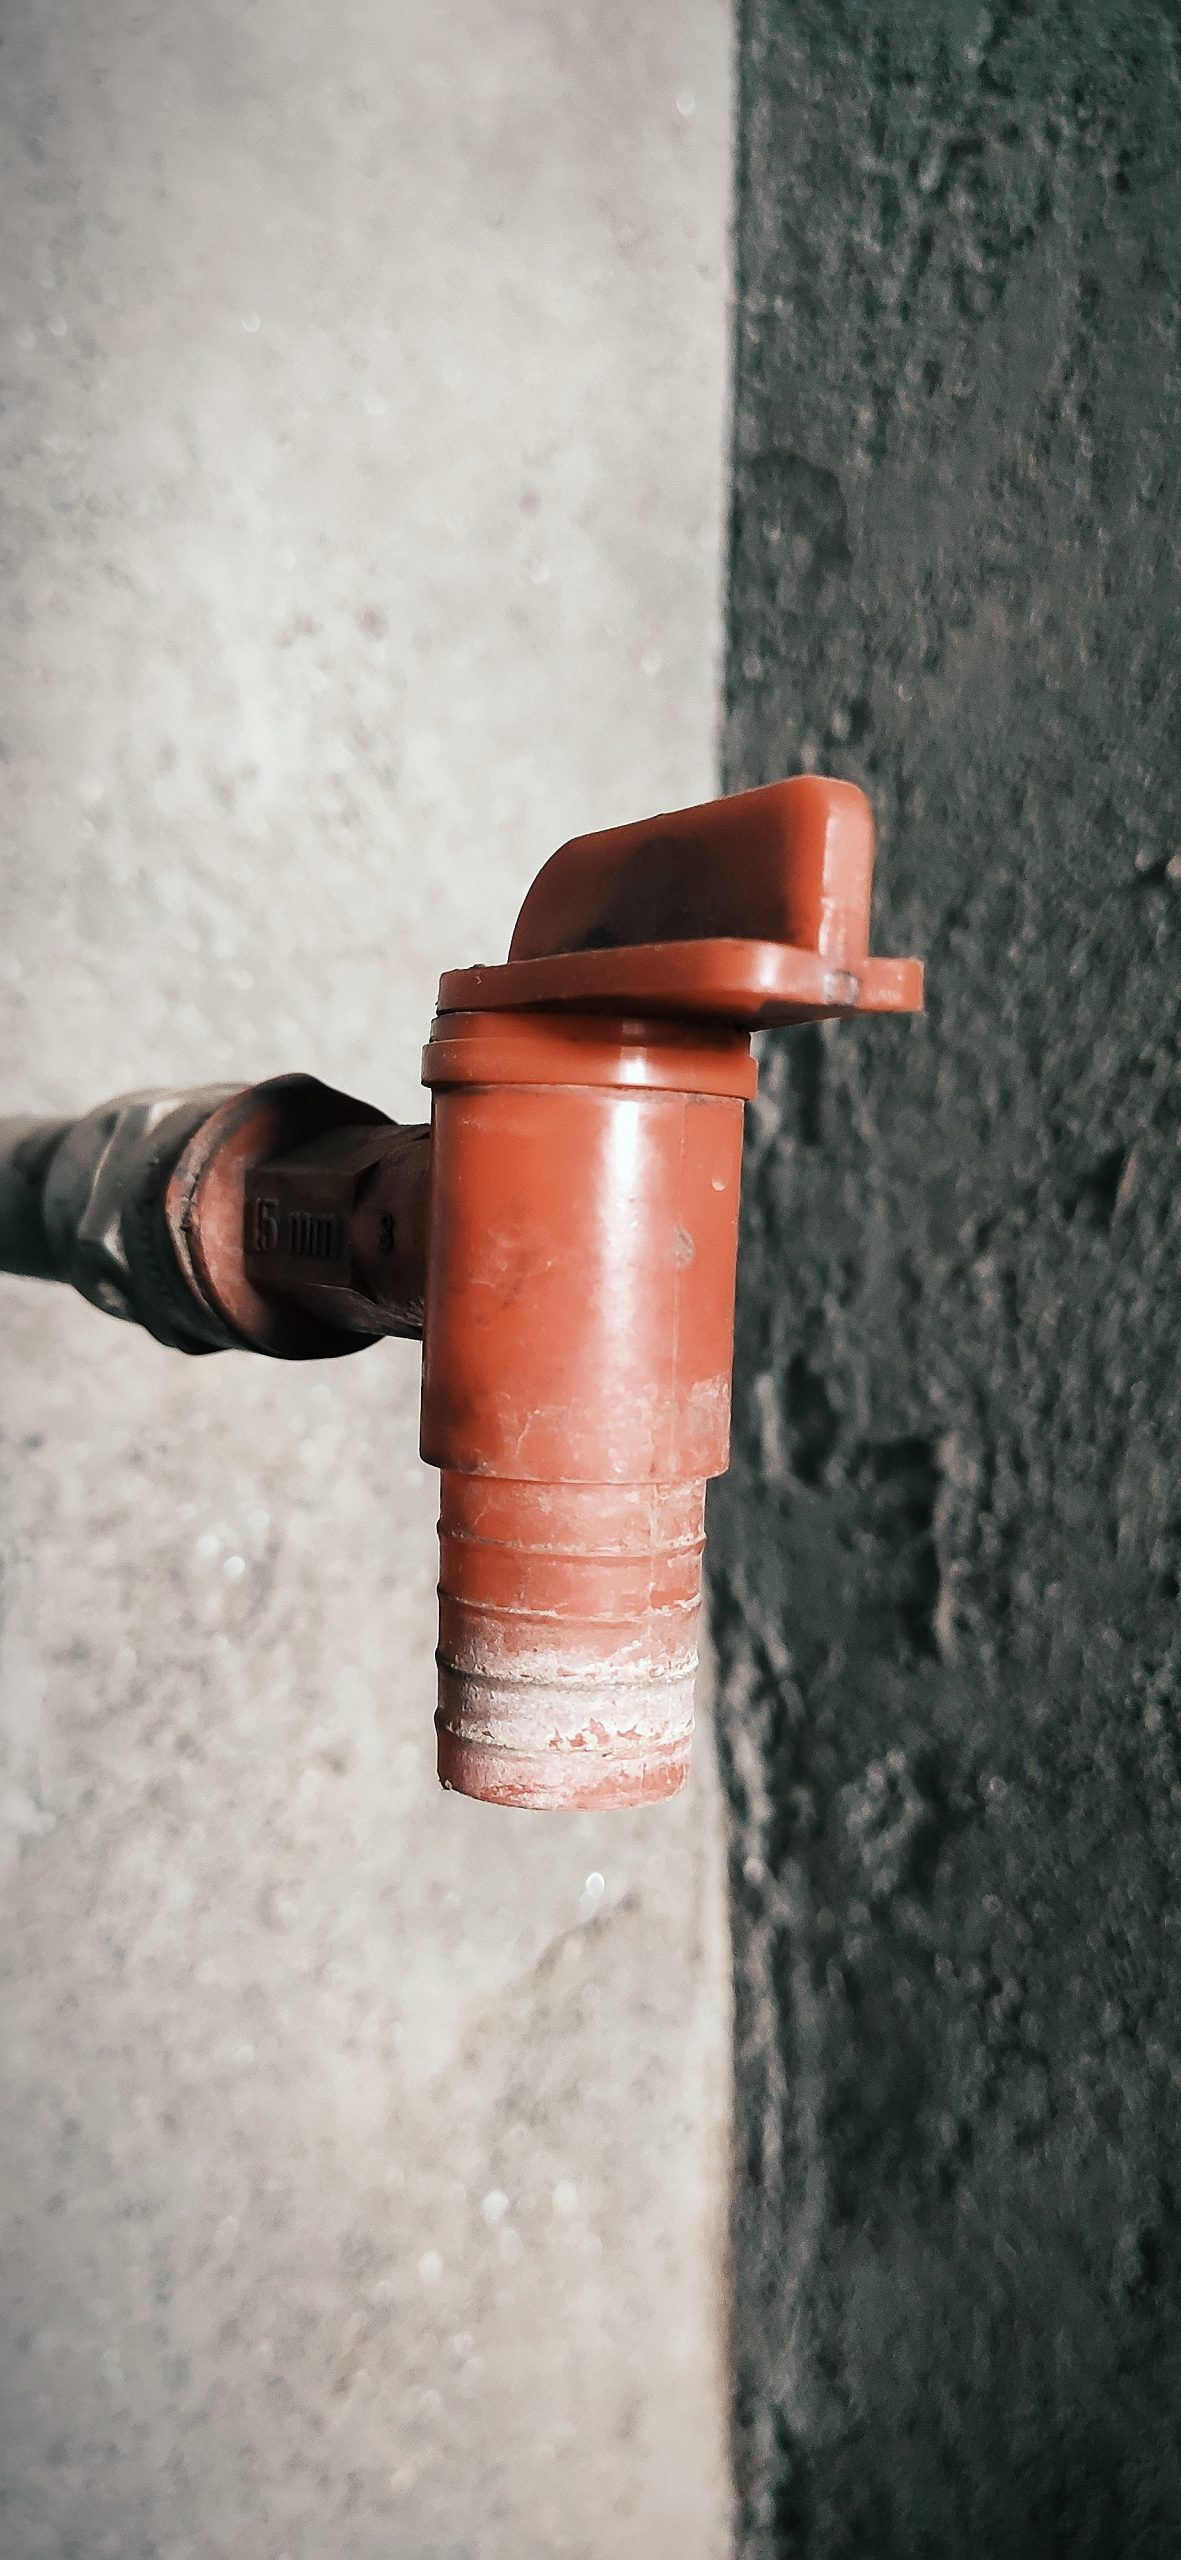 A water tap